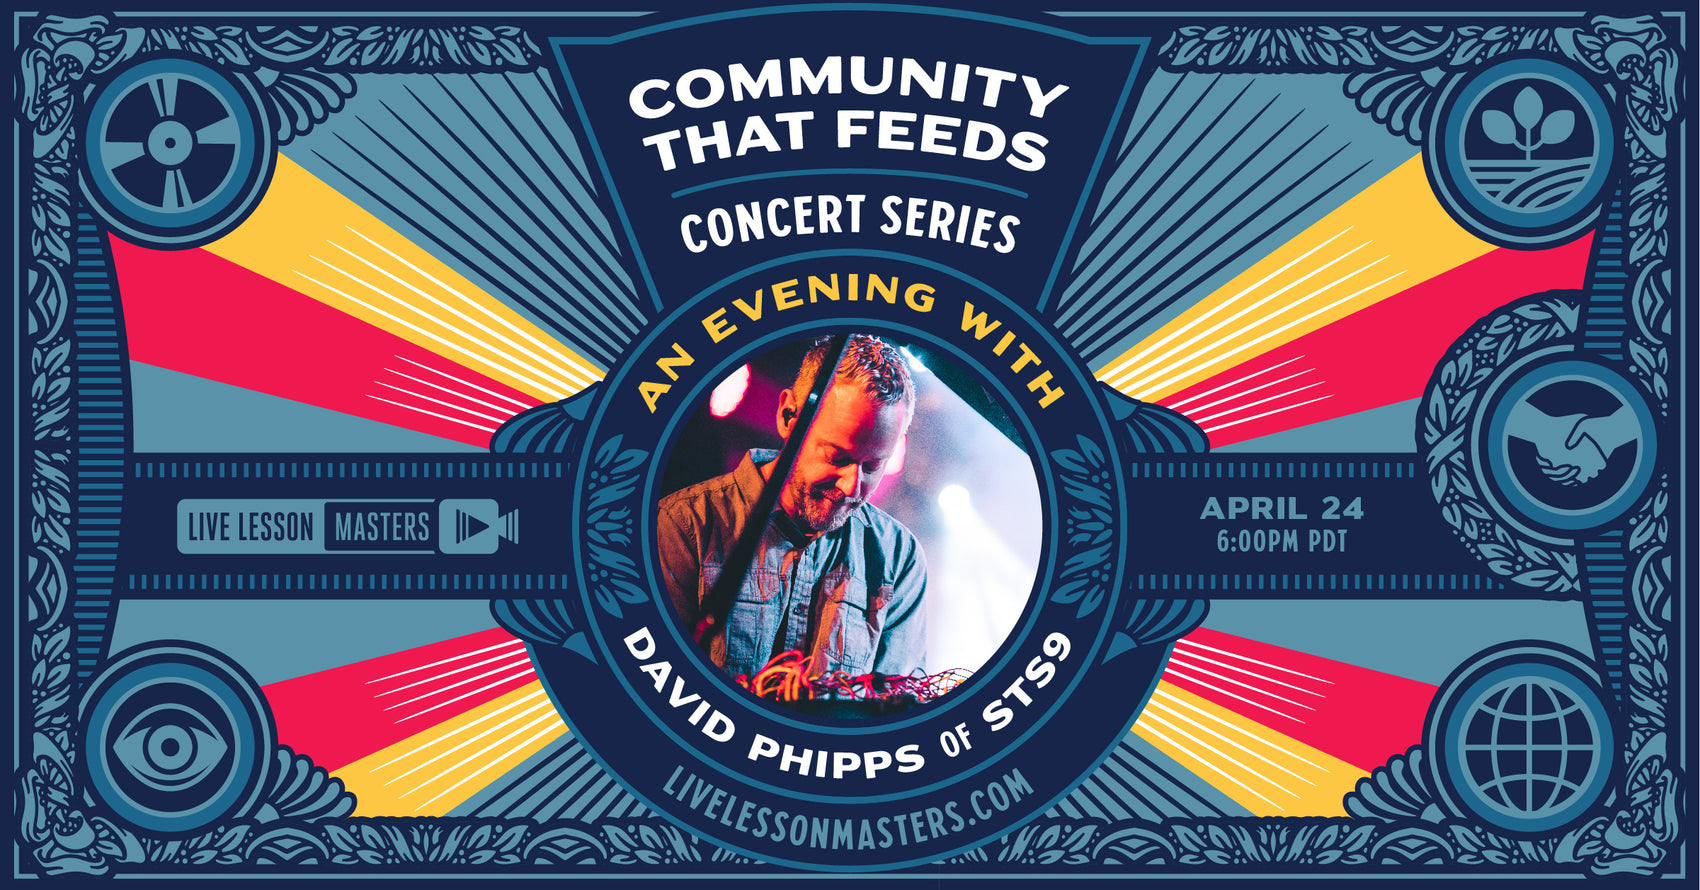 Community That Feeds Concert Series: David Phipps of STS9